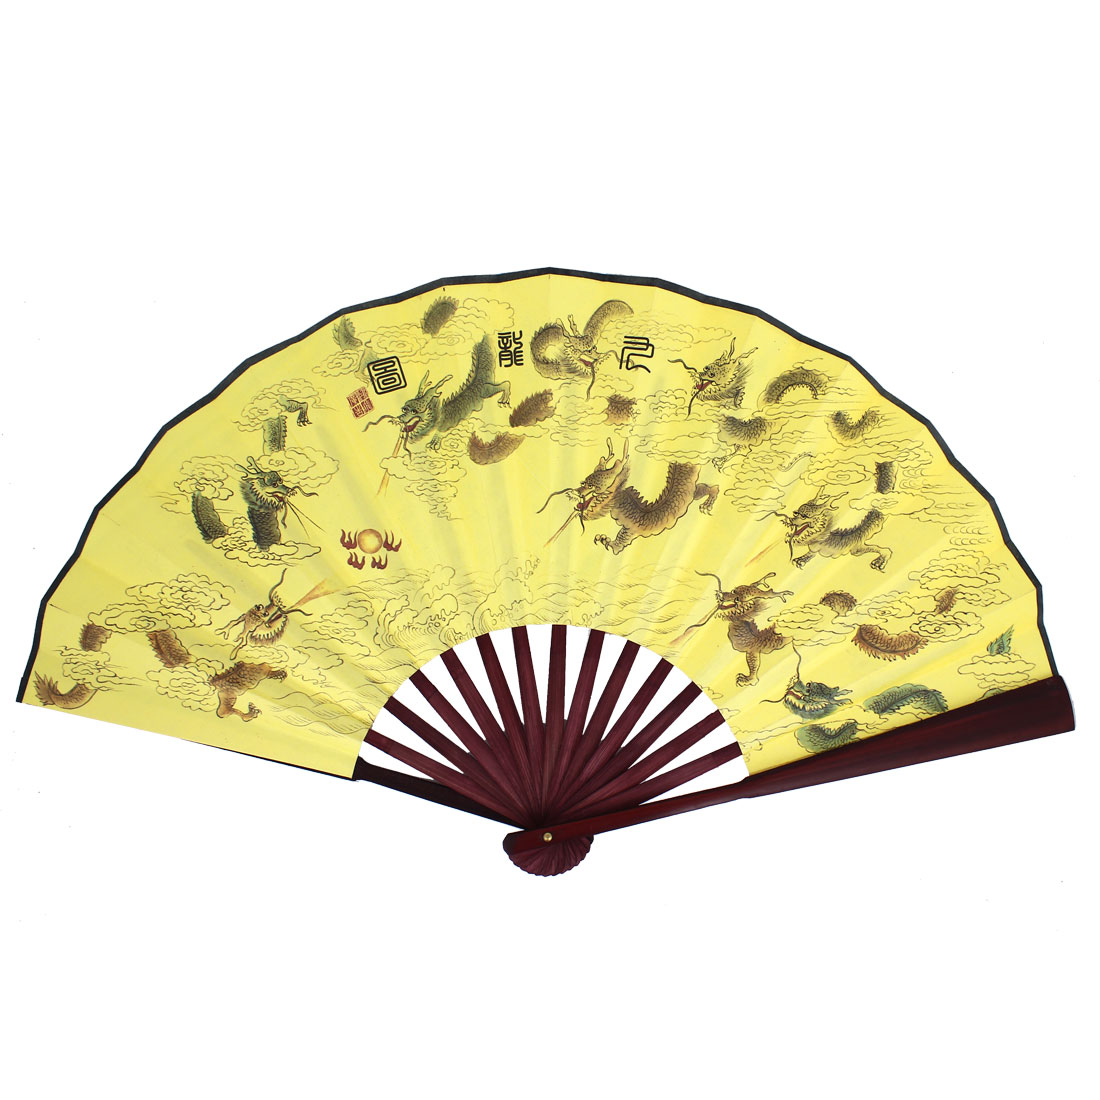 Bamboo Frame Dragon Printed Handheld Collapsible Hand Fan Yellow